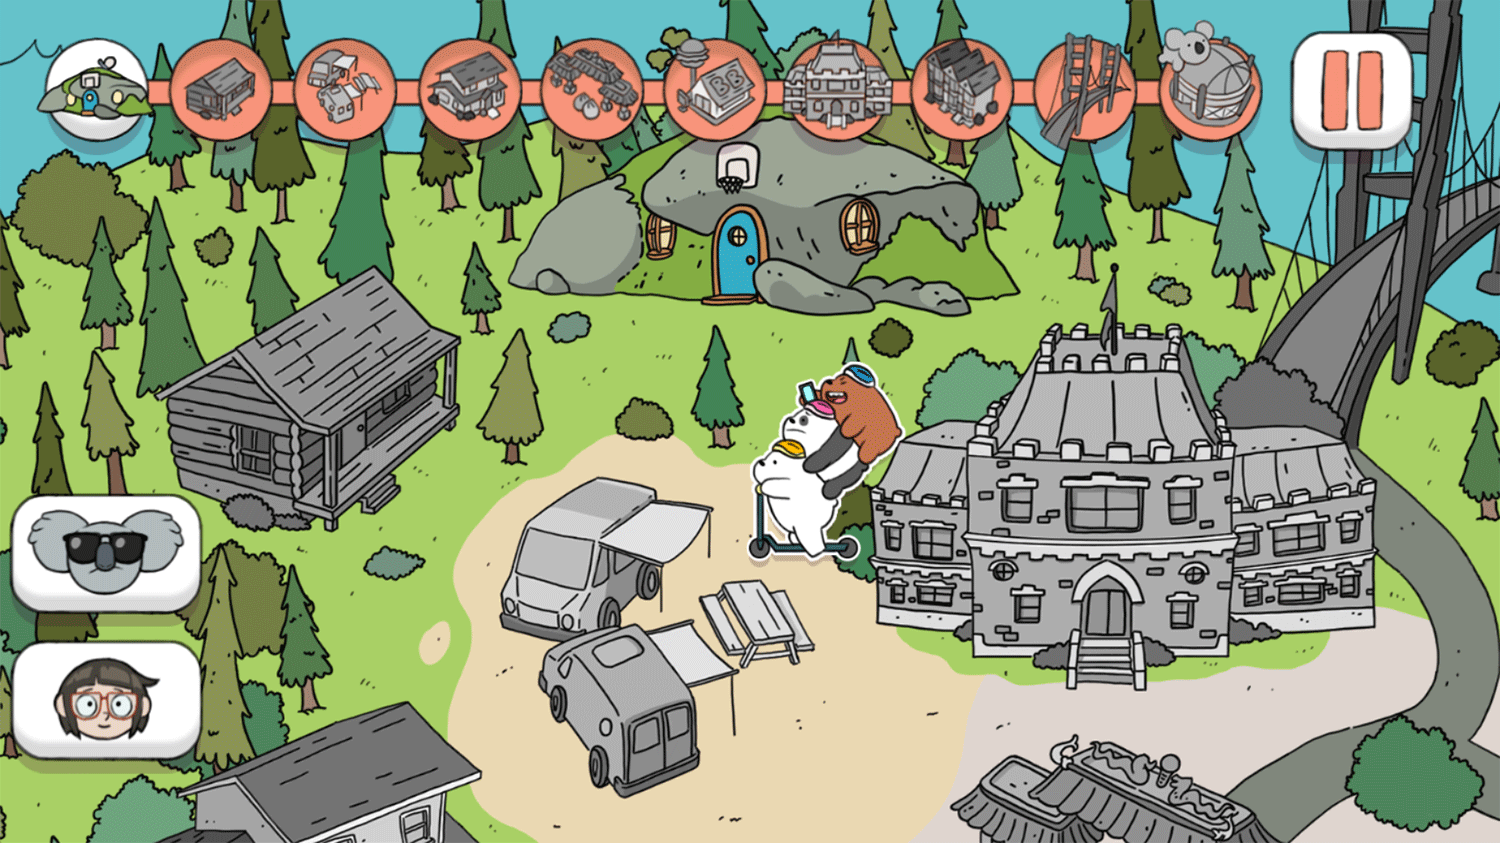 We Bare Bears Scooter Streamers Level Select Screenshot.